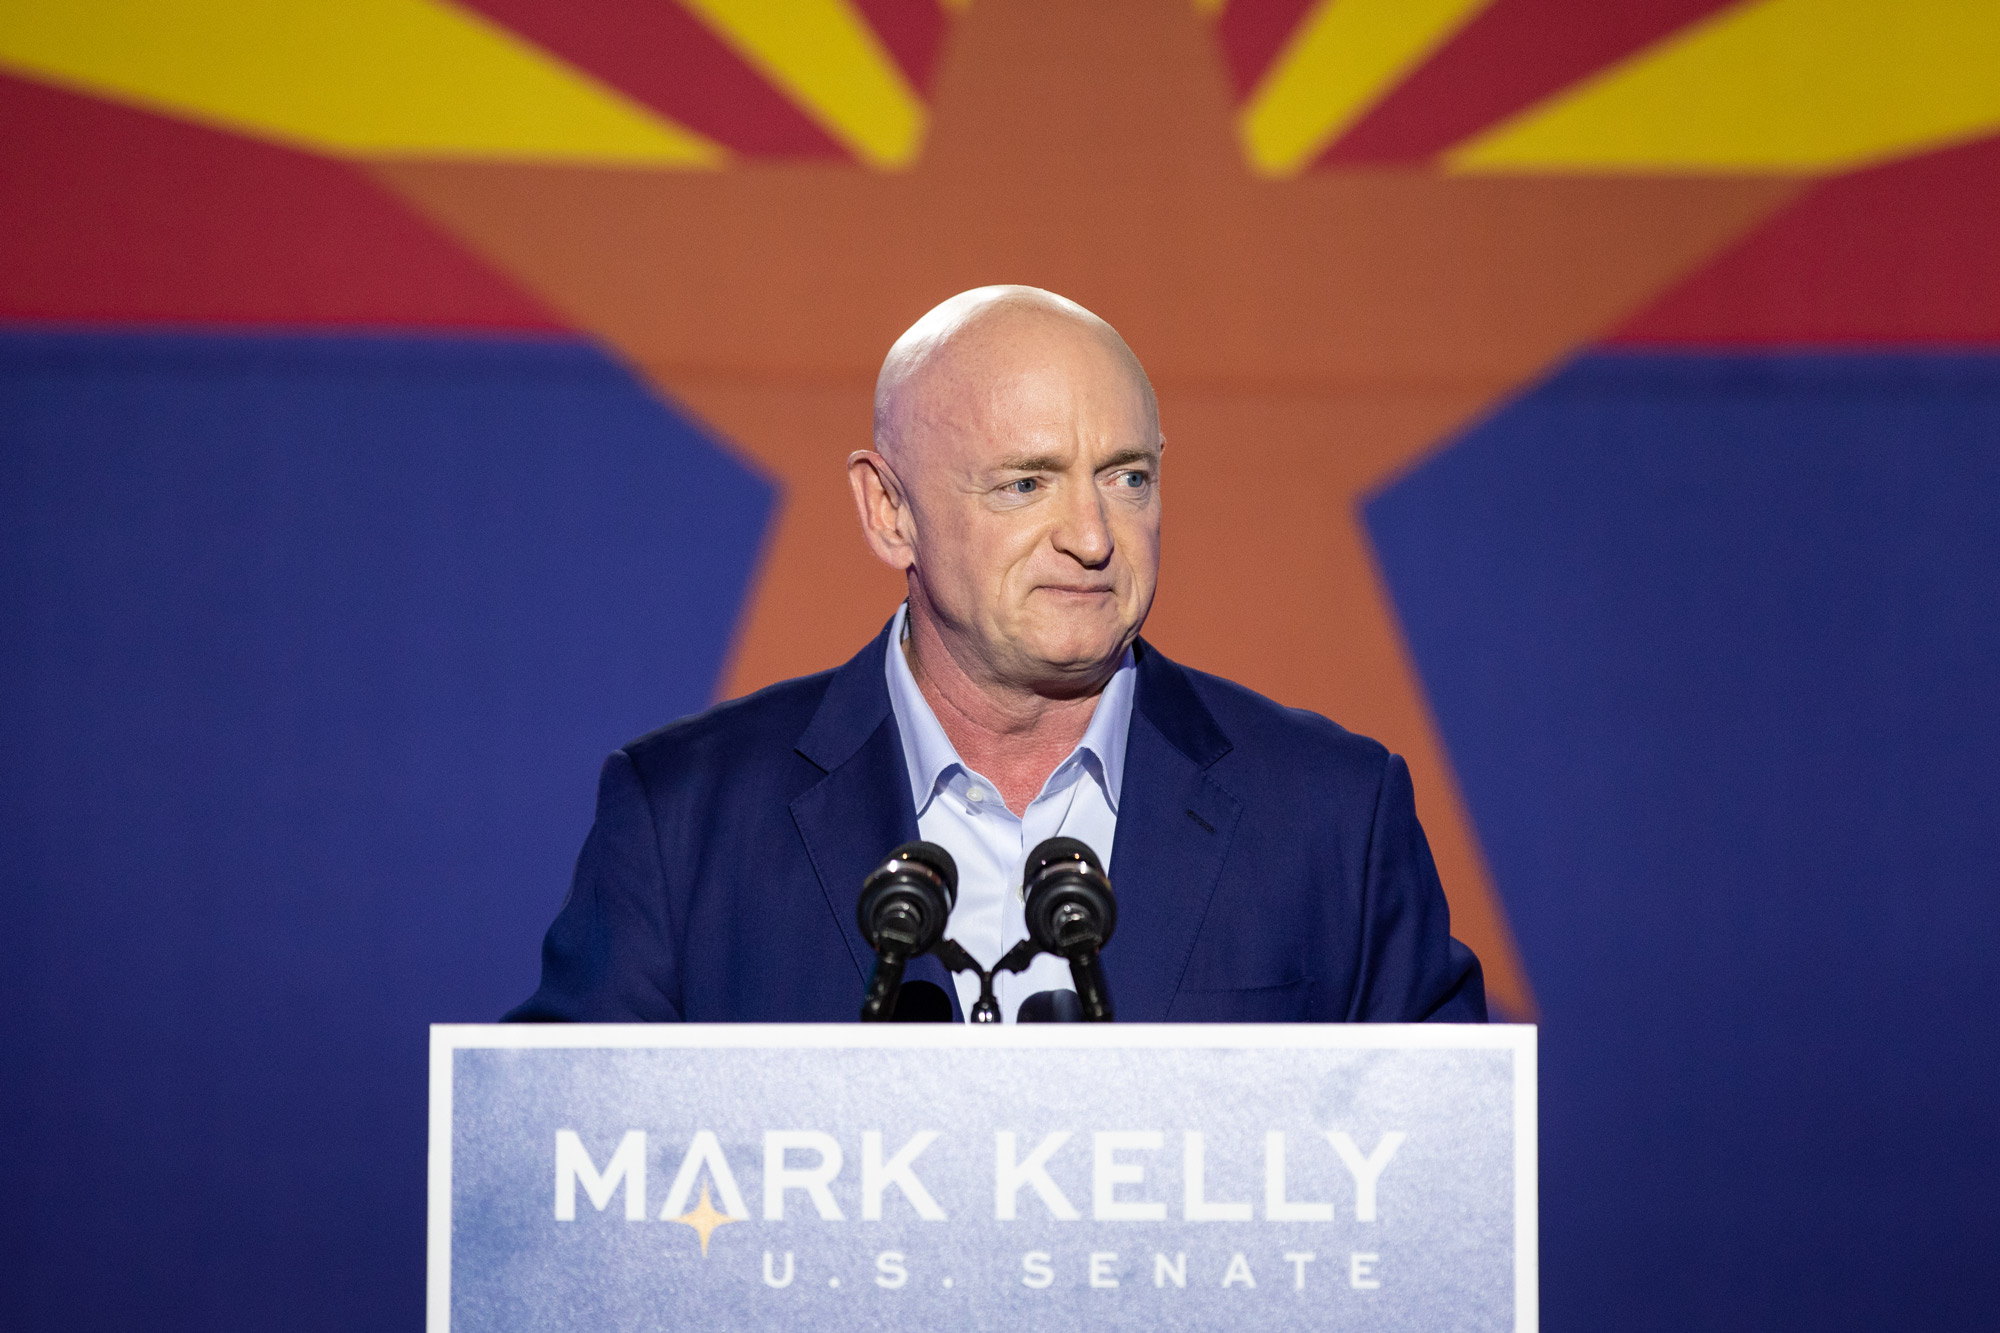 Democratic U.S. Senate candidate Mark Kelly speaks to supporters during the Election Night event at Hotel Congress on November 3 in Tucson, Arizona.